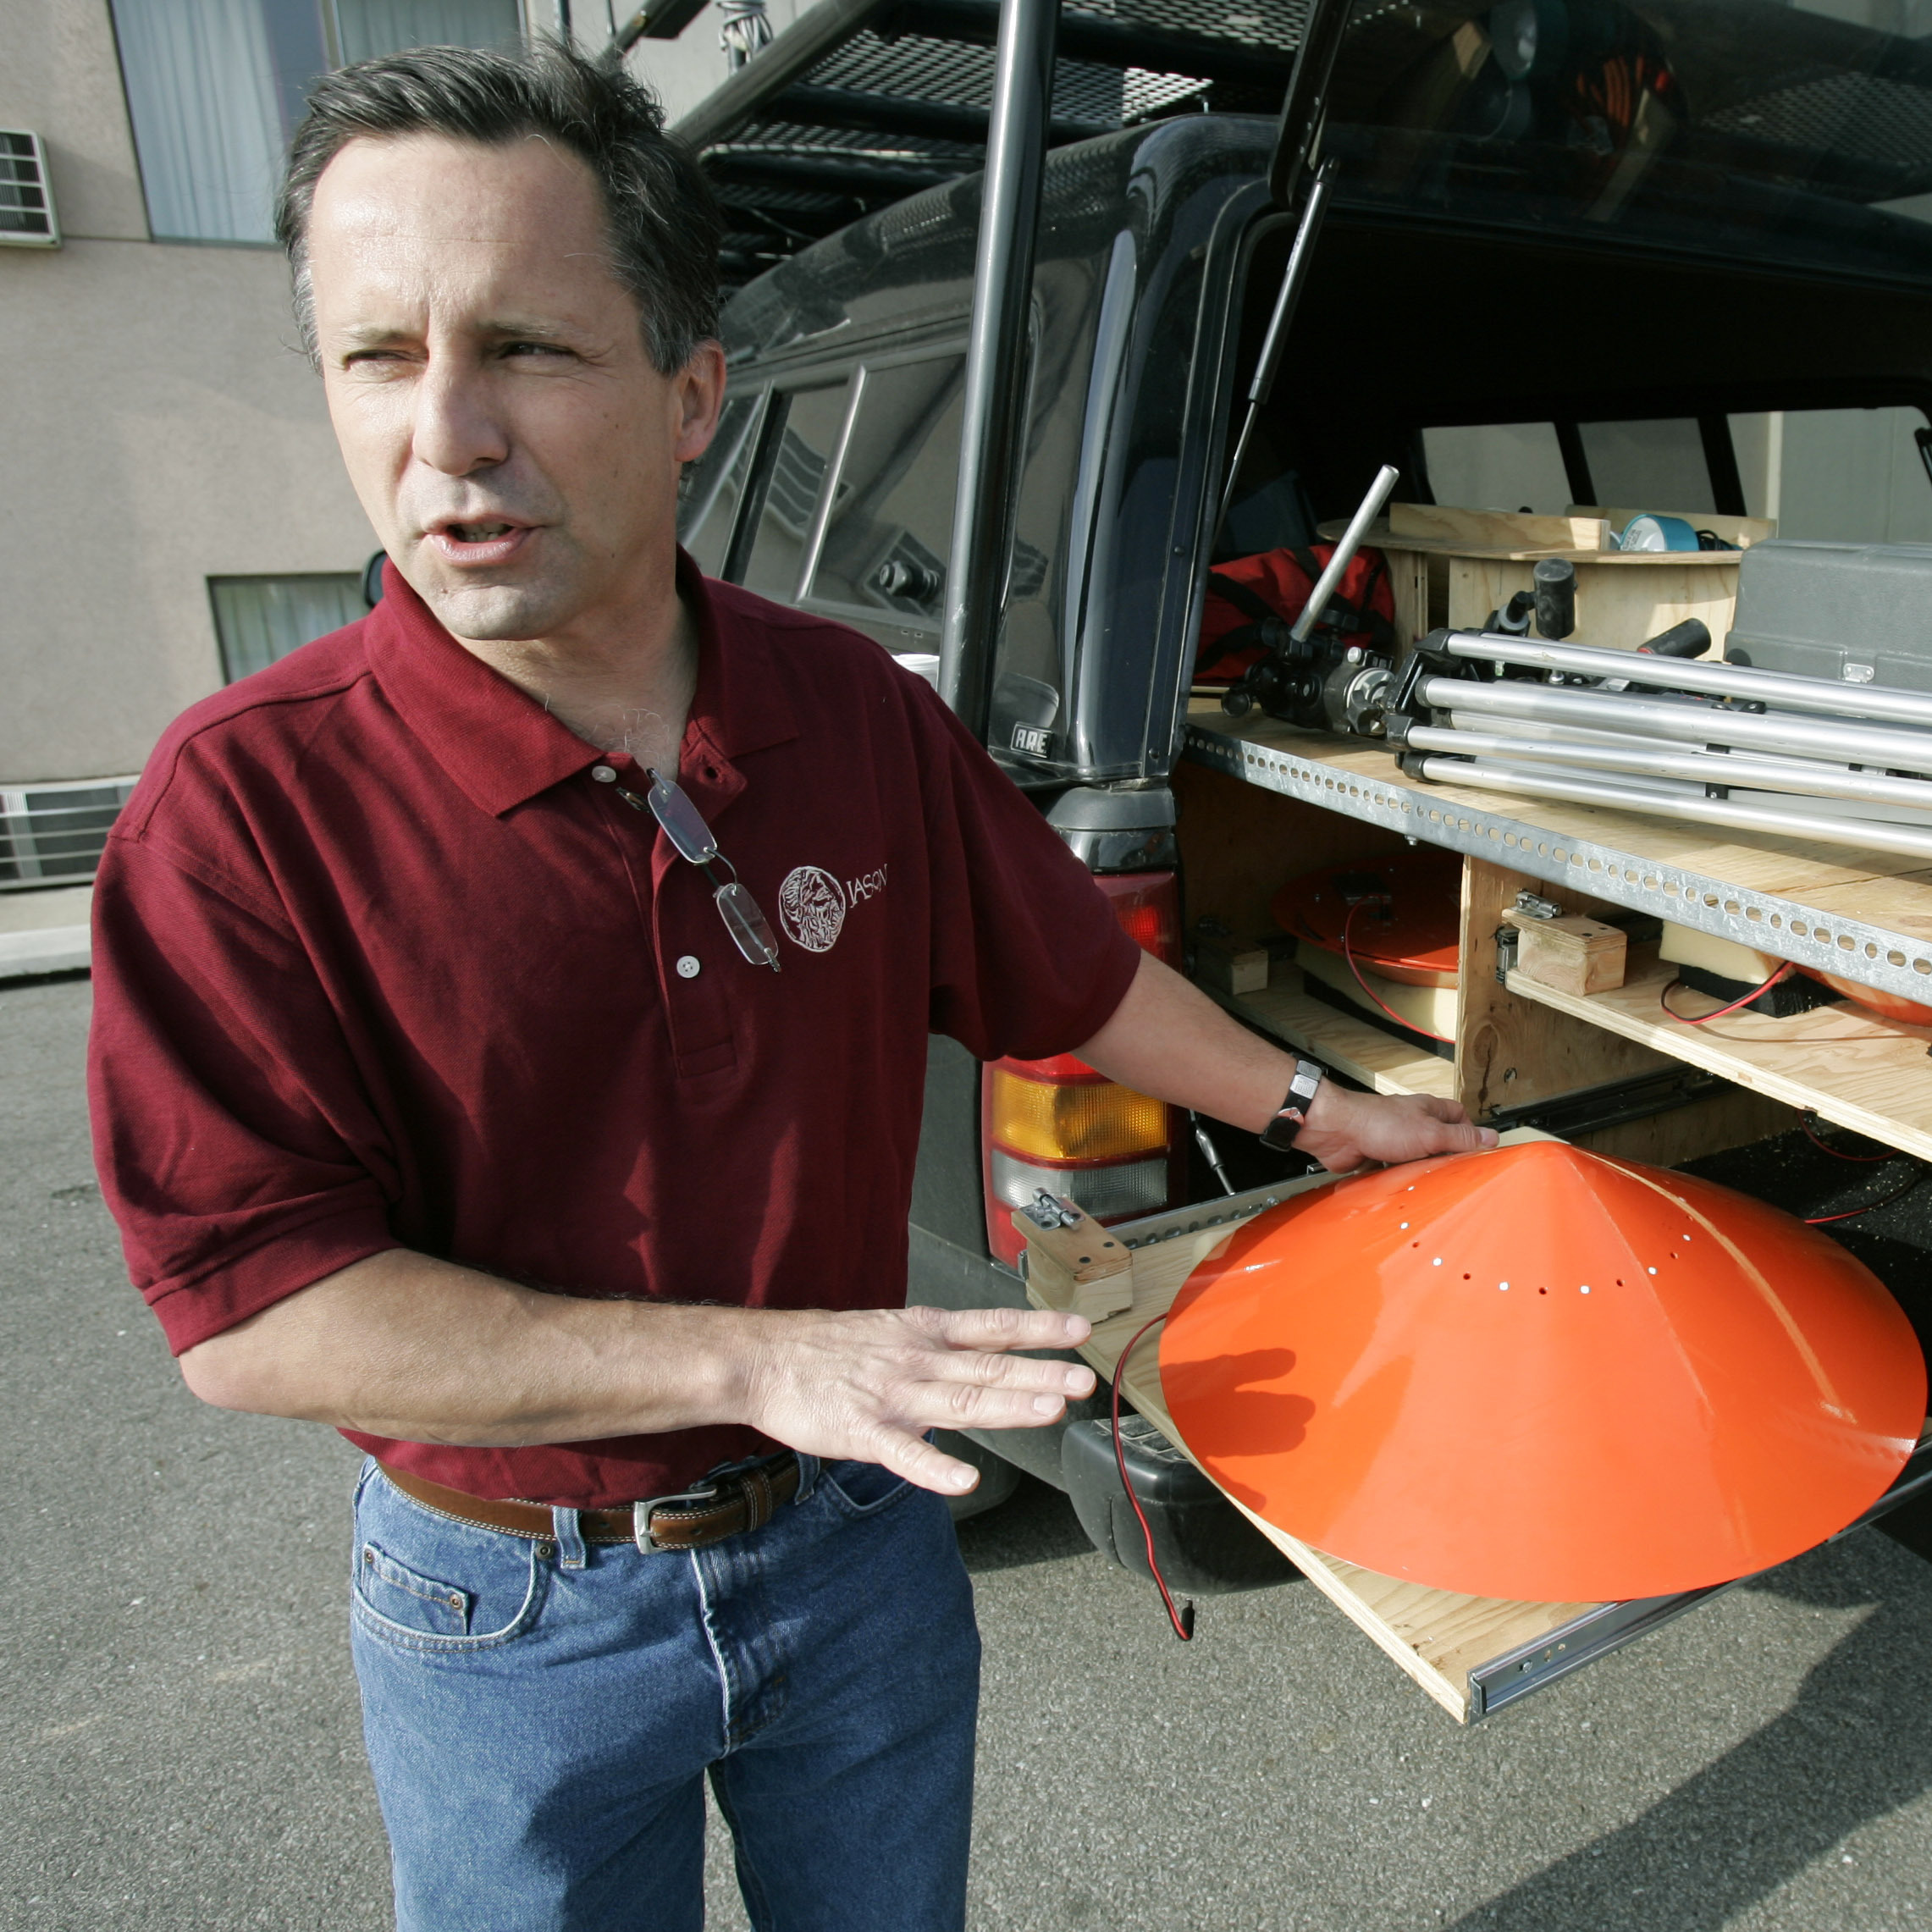 Tornado chaser Tim Samaras shows the probes he used when trying to collect data from a tornado. This photo was taken May 26, 2006, in Ames, Iowa.